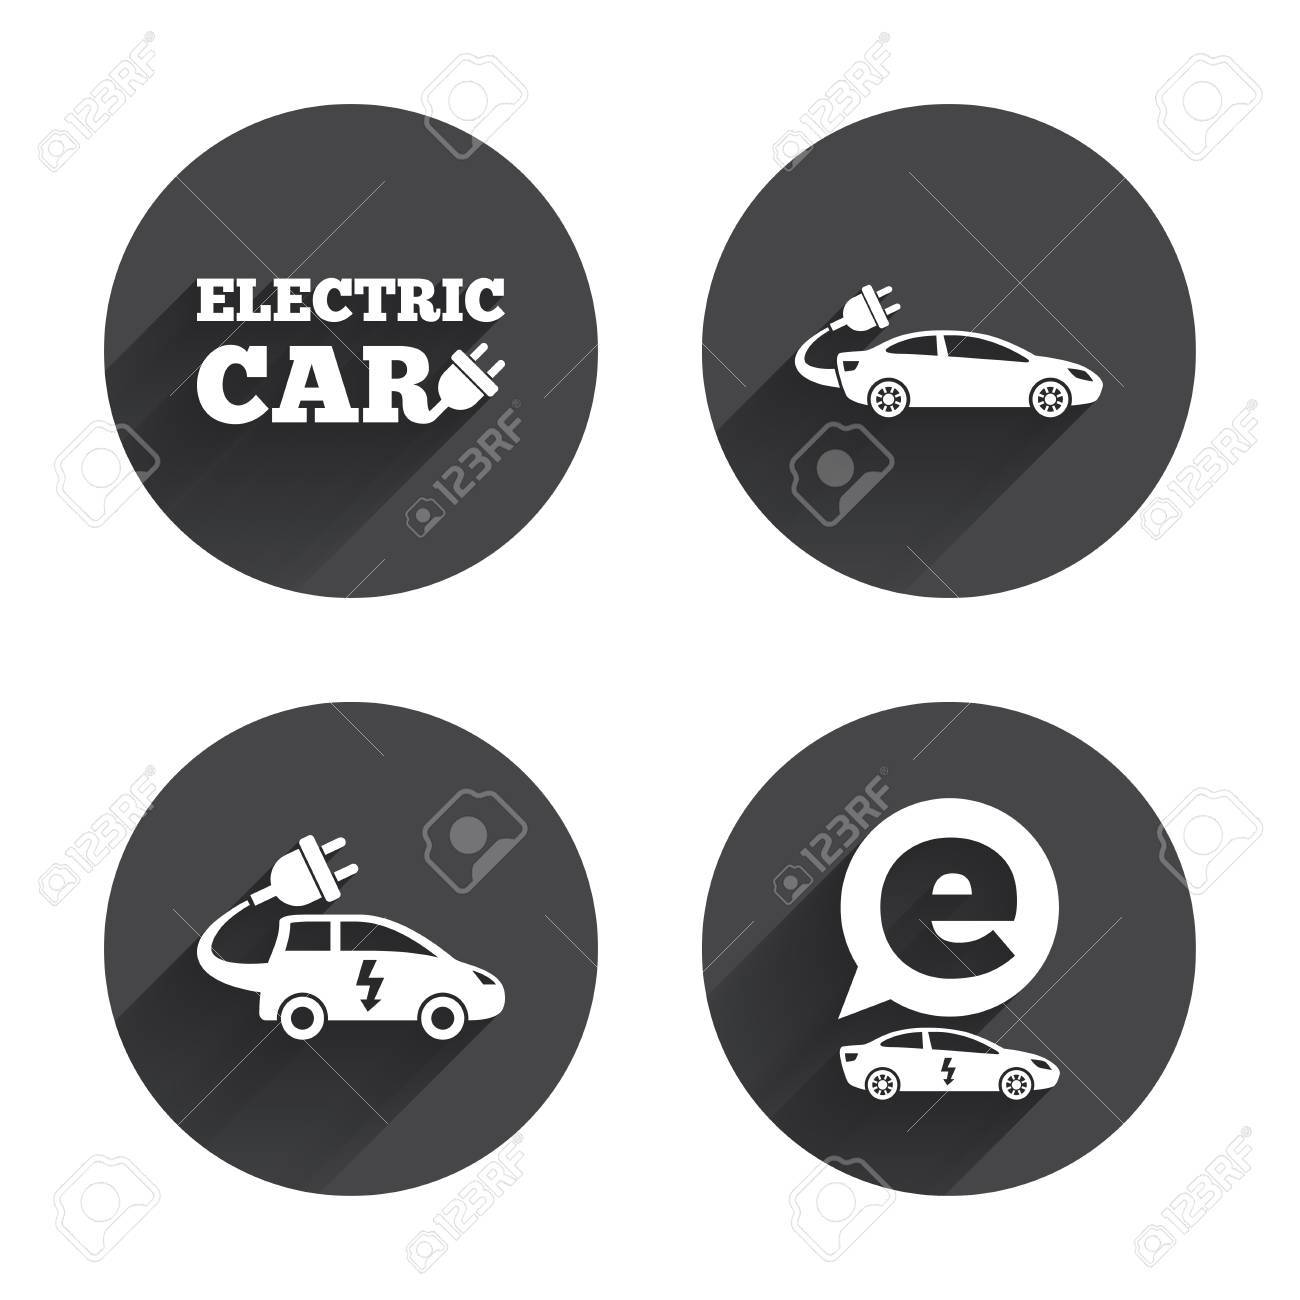 Best electric signs and symbols gallery electrical and wiring awesome electric signs and symbols ideas everything you need to biocorpaavc Choice Image